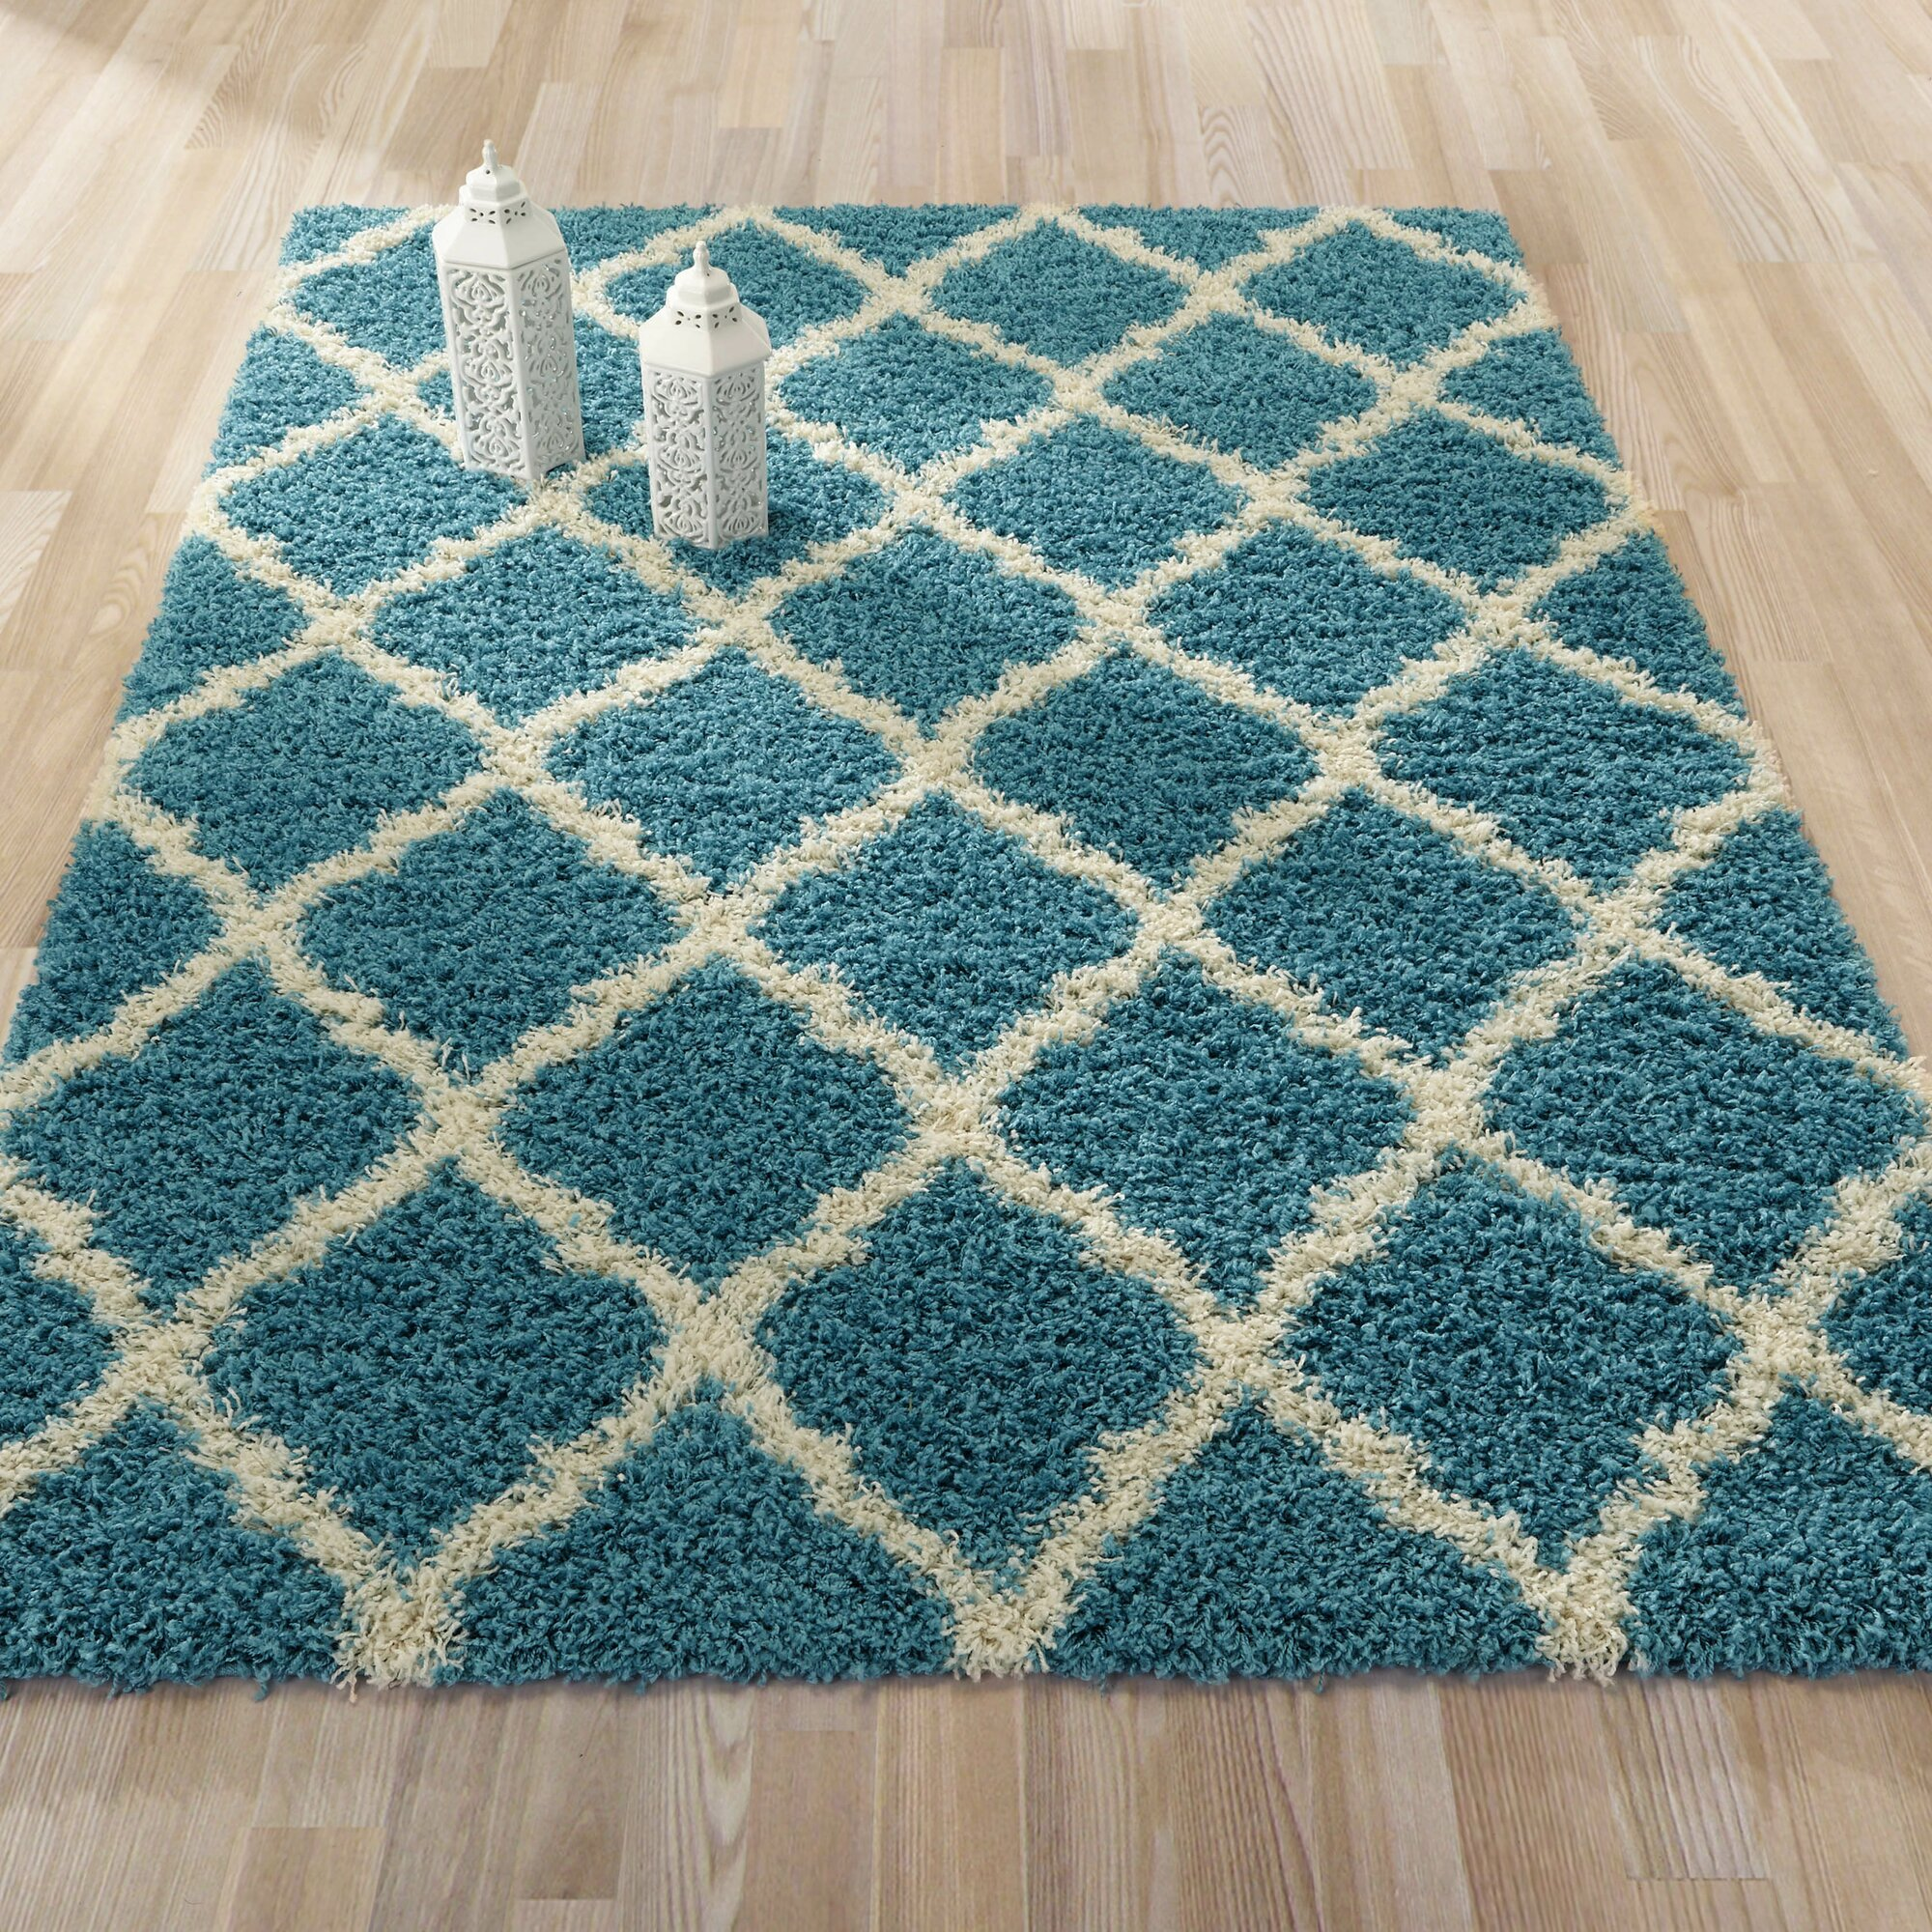 Teal Area Rug Turquoise Rug Soft Rug Bathroom By: Ottomanson Ultimate Moroccan Trellis Soft Turquoise Shaggy